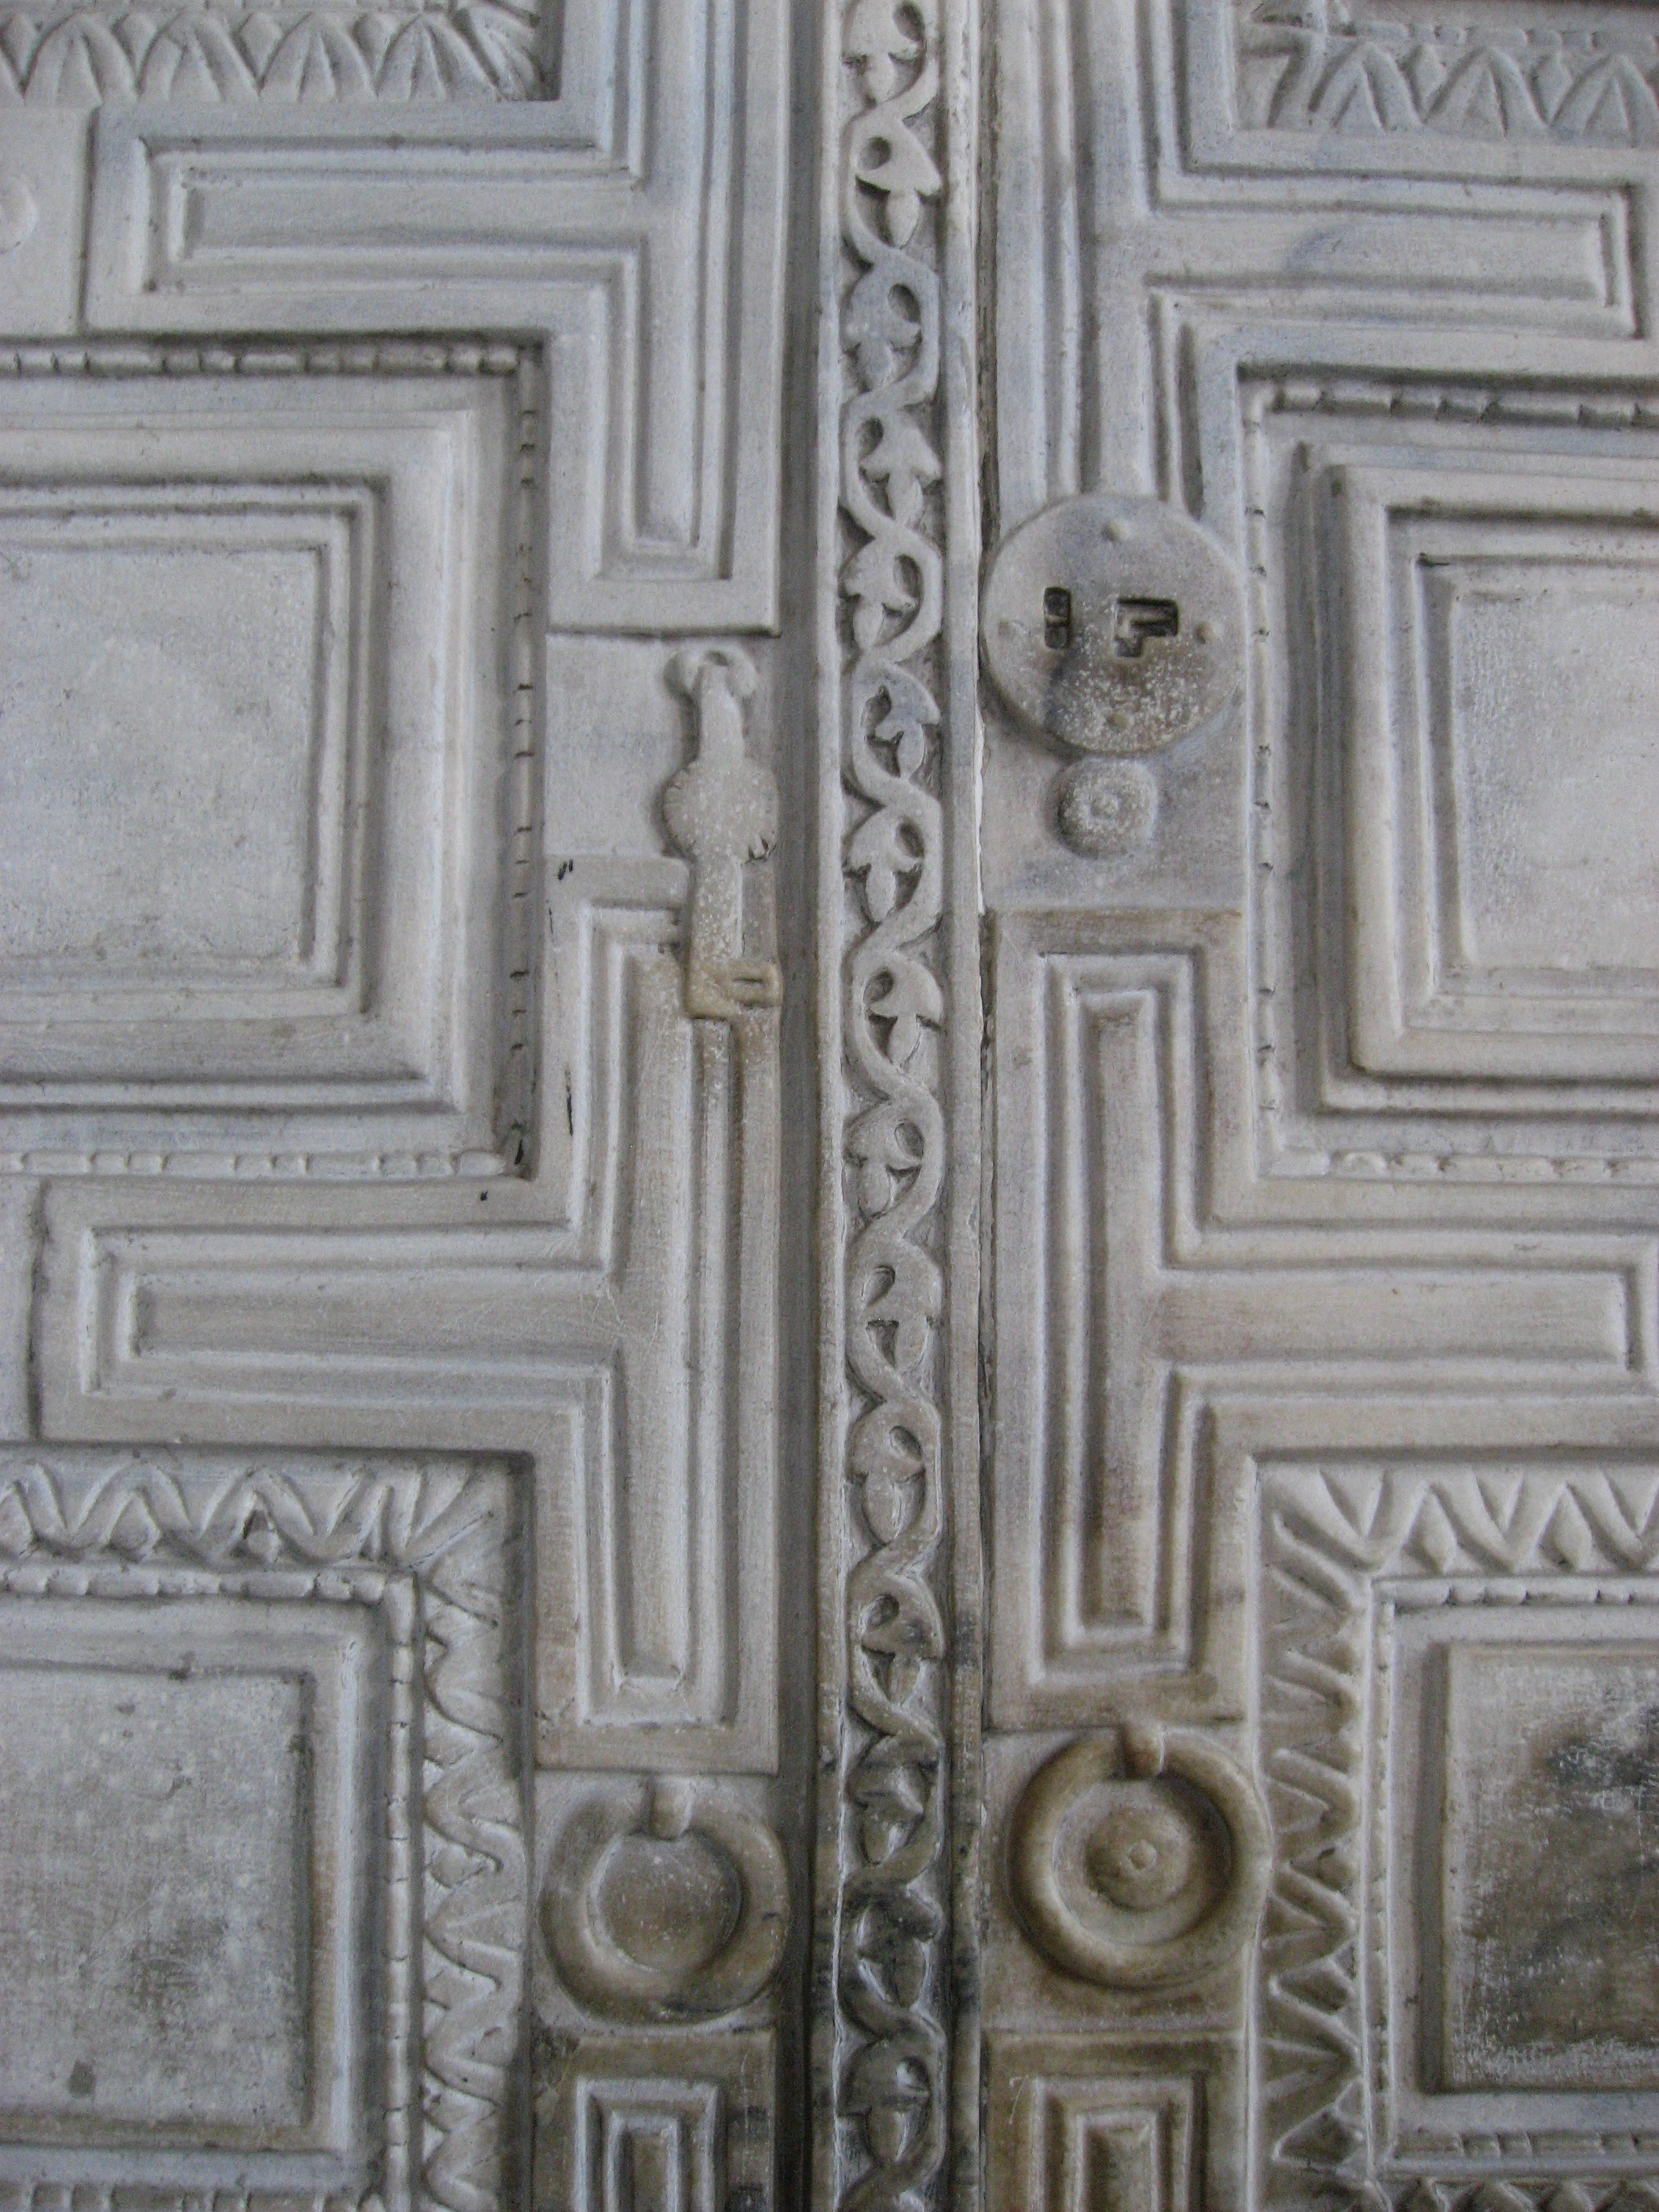 Merveilleux File:Marble Door Hagia Sophia March 2008b.JPG